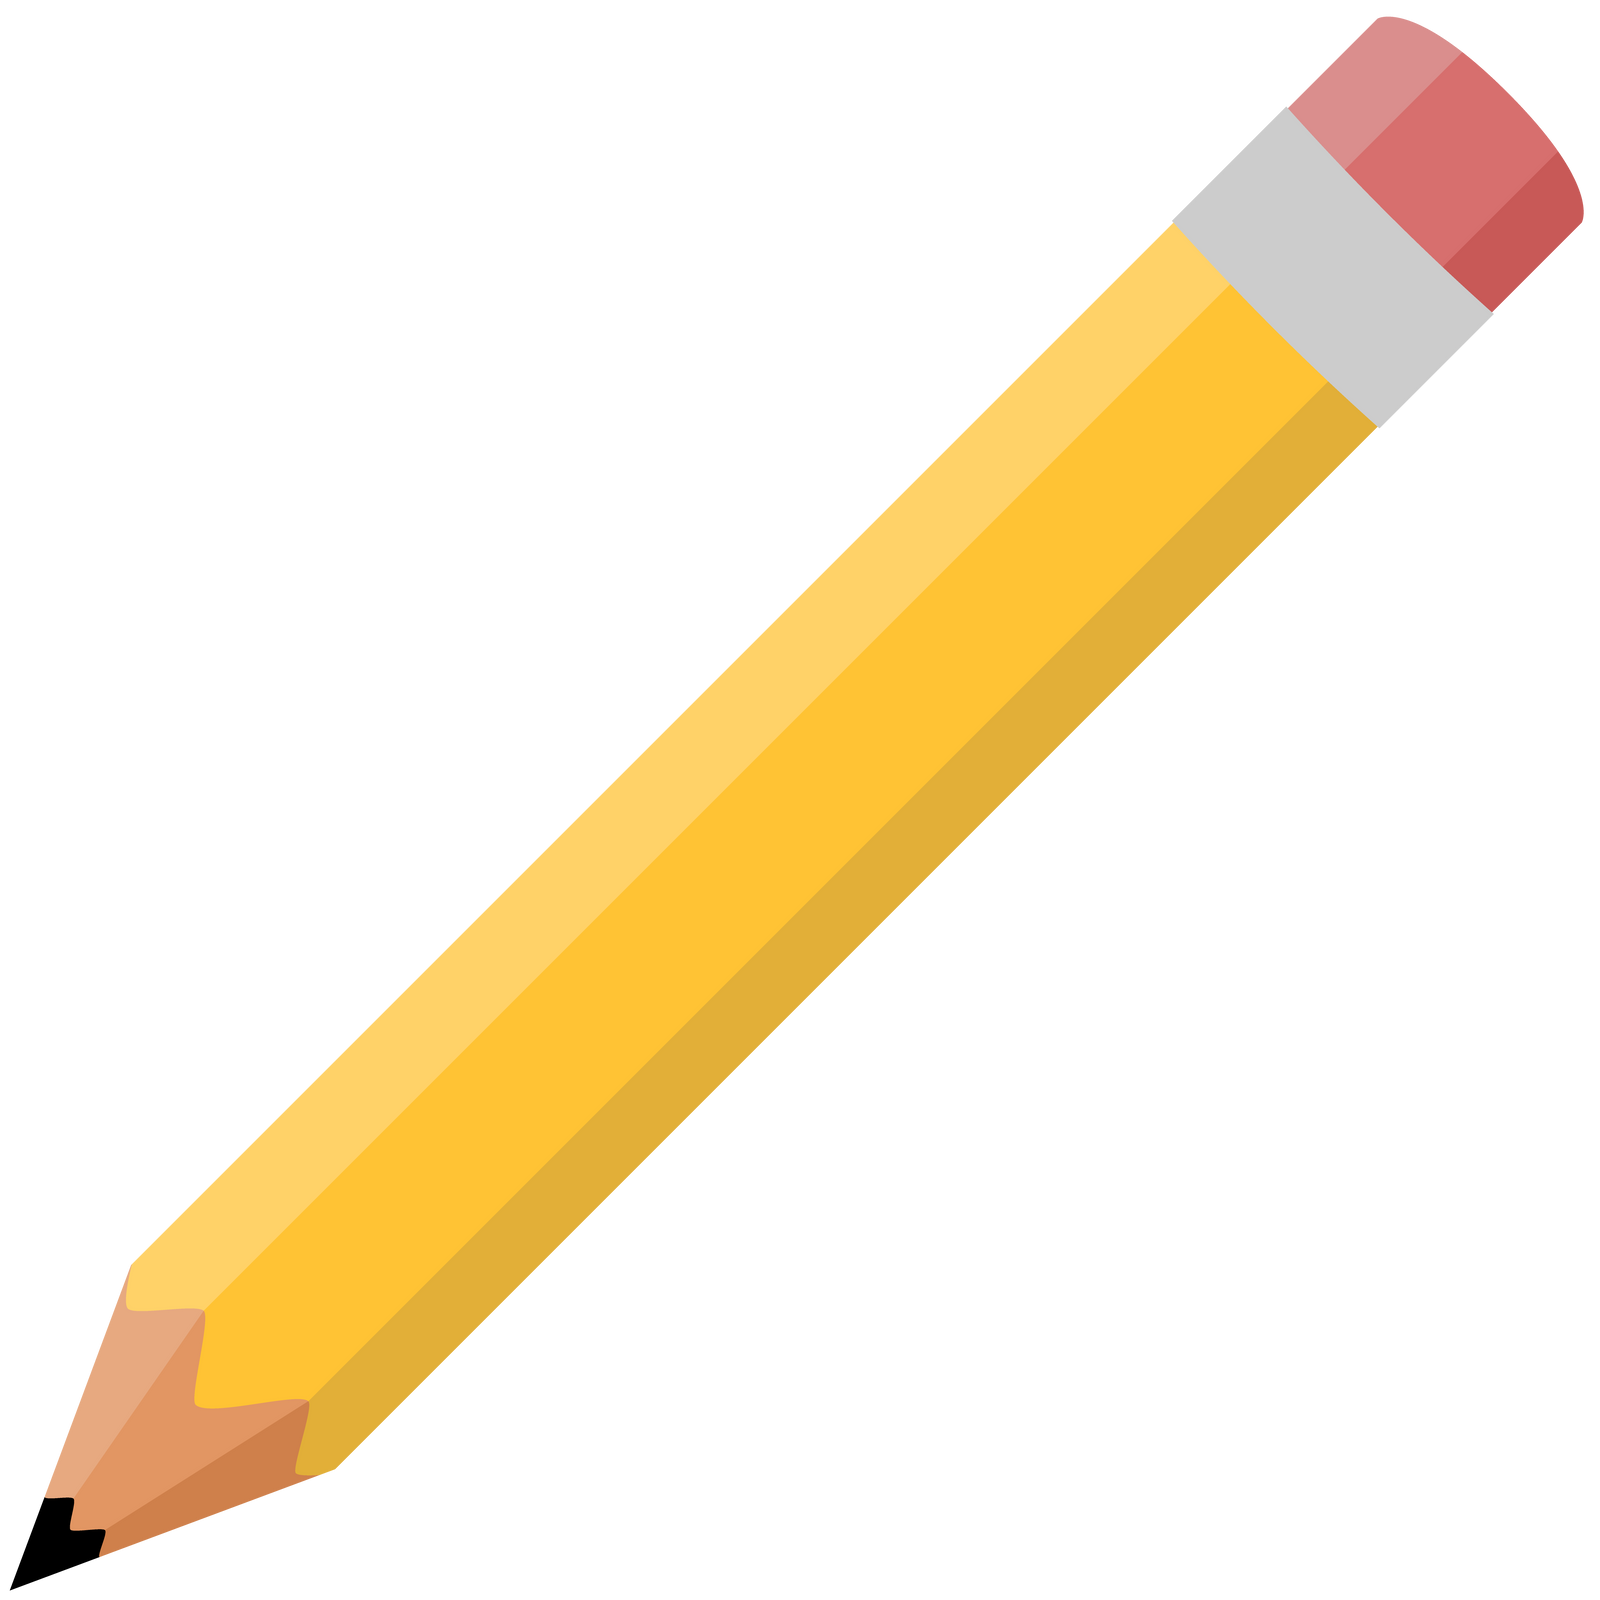 Pencil Drawing Images Cartoons: Pencil Vector Resource [Free] By Lahirien On DeviantArt